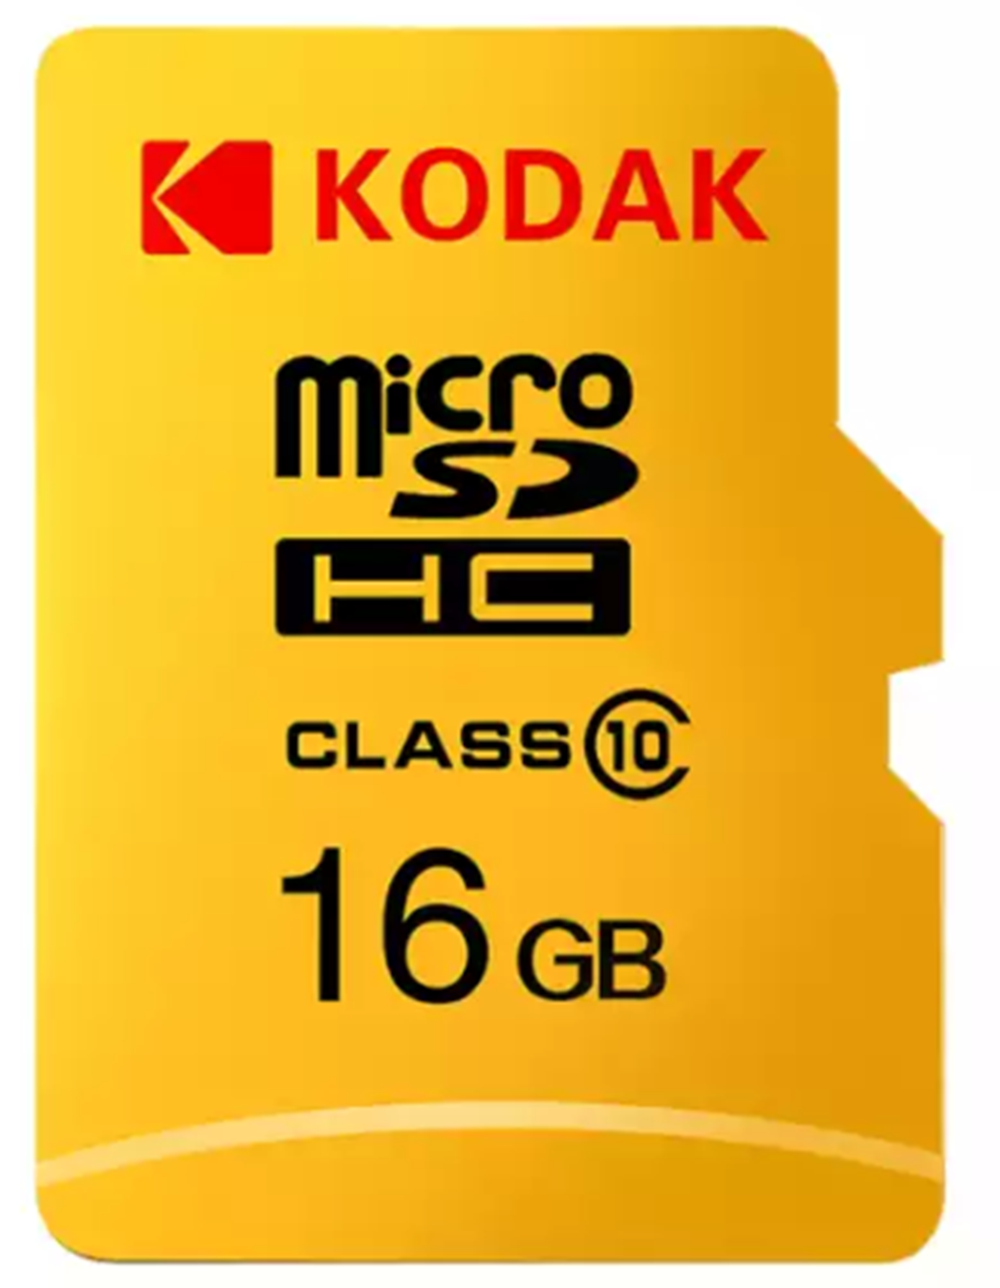 KODAK Micro Card 16GB 32GB SDHC 128GB 256GB SDXC UHS-I U3 V30 A1 4K Ultra Class 10 TF Card High Speed Card For Video Camera